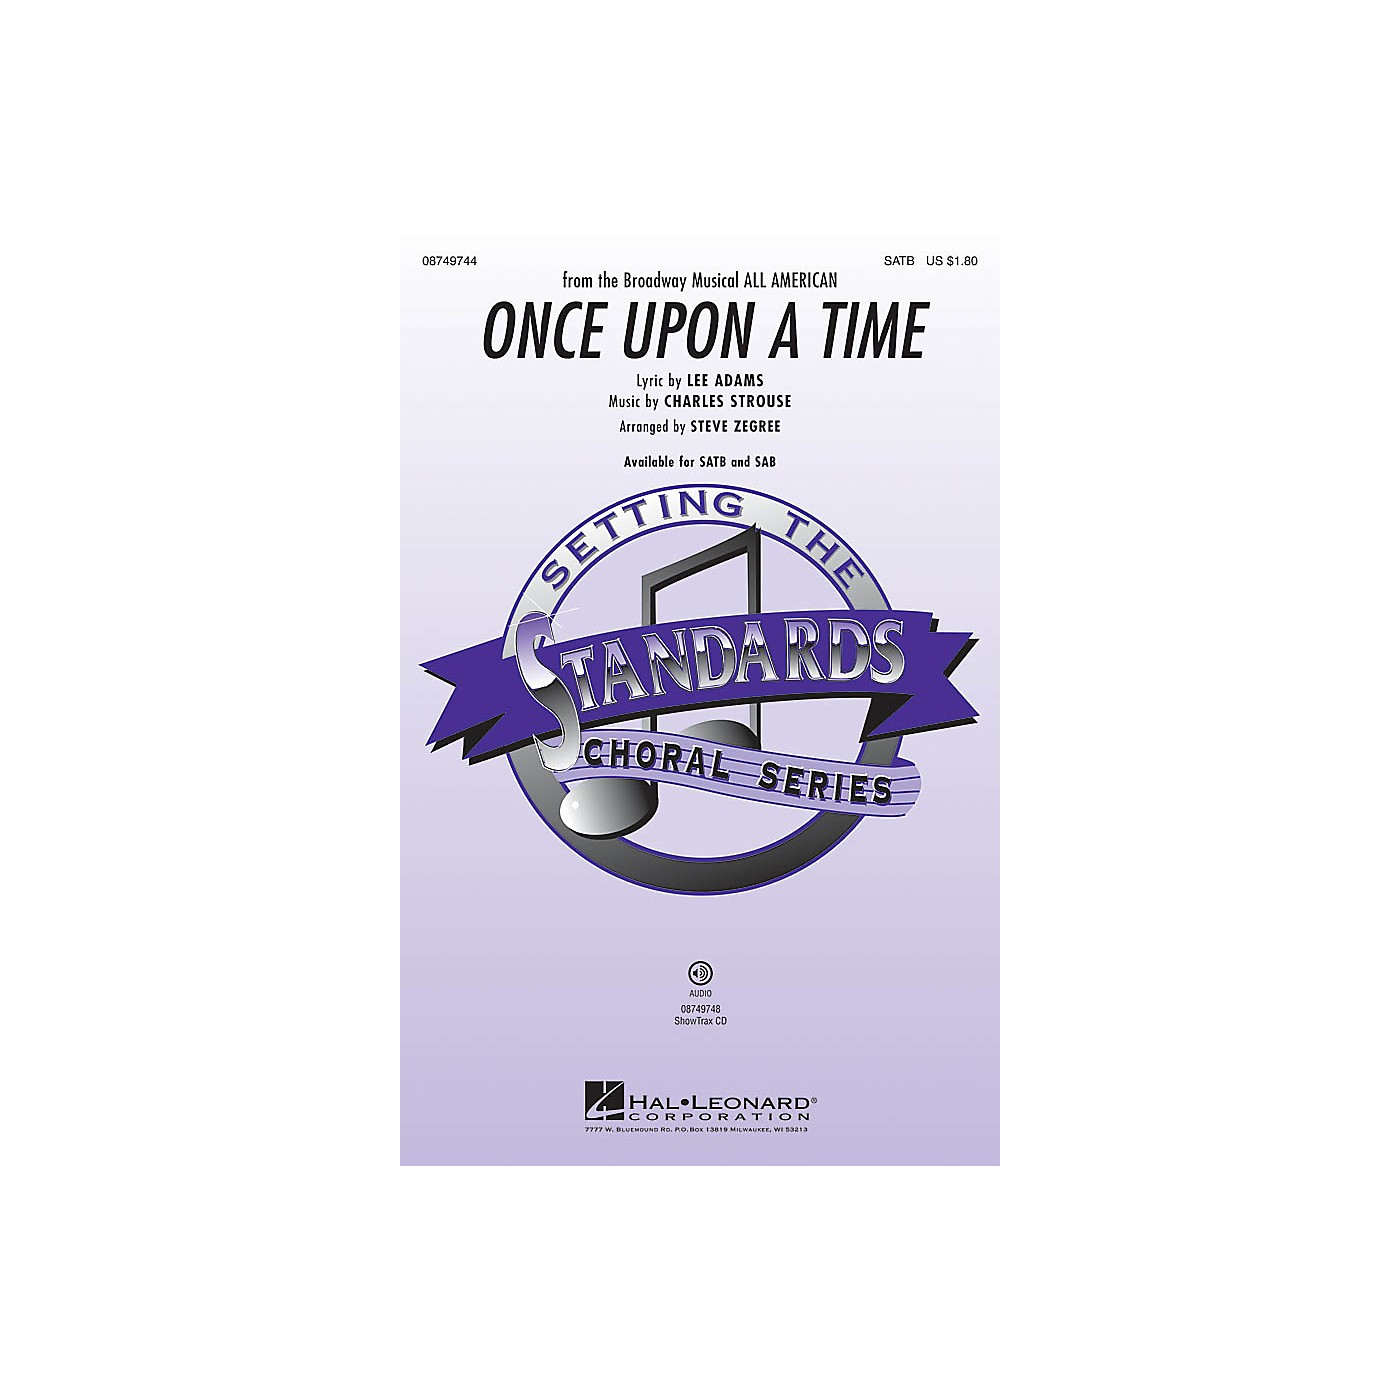 Hal Leonard Once Upon a Time SATB arranged by Steve Zegree thumbnail